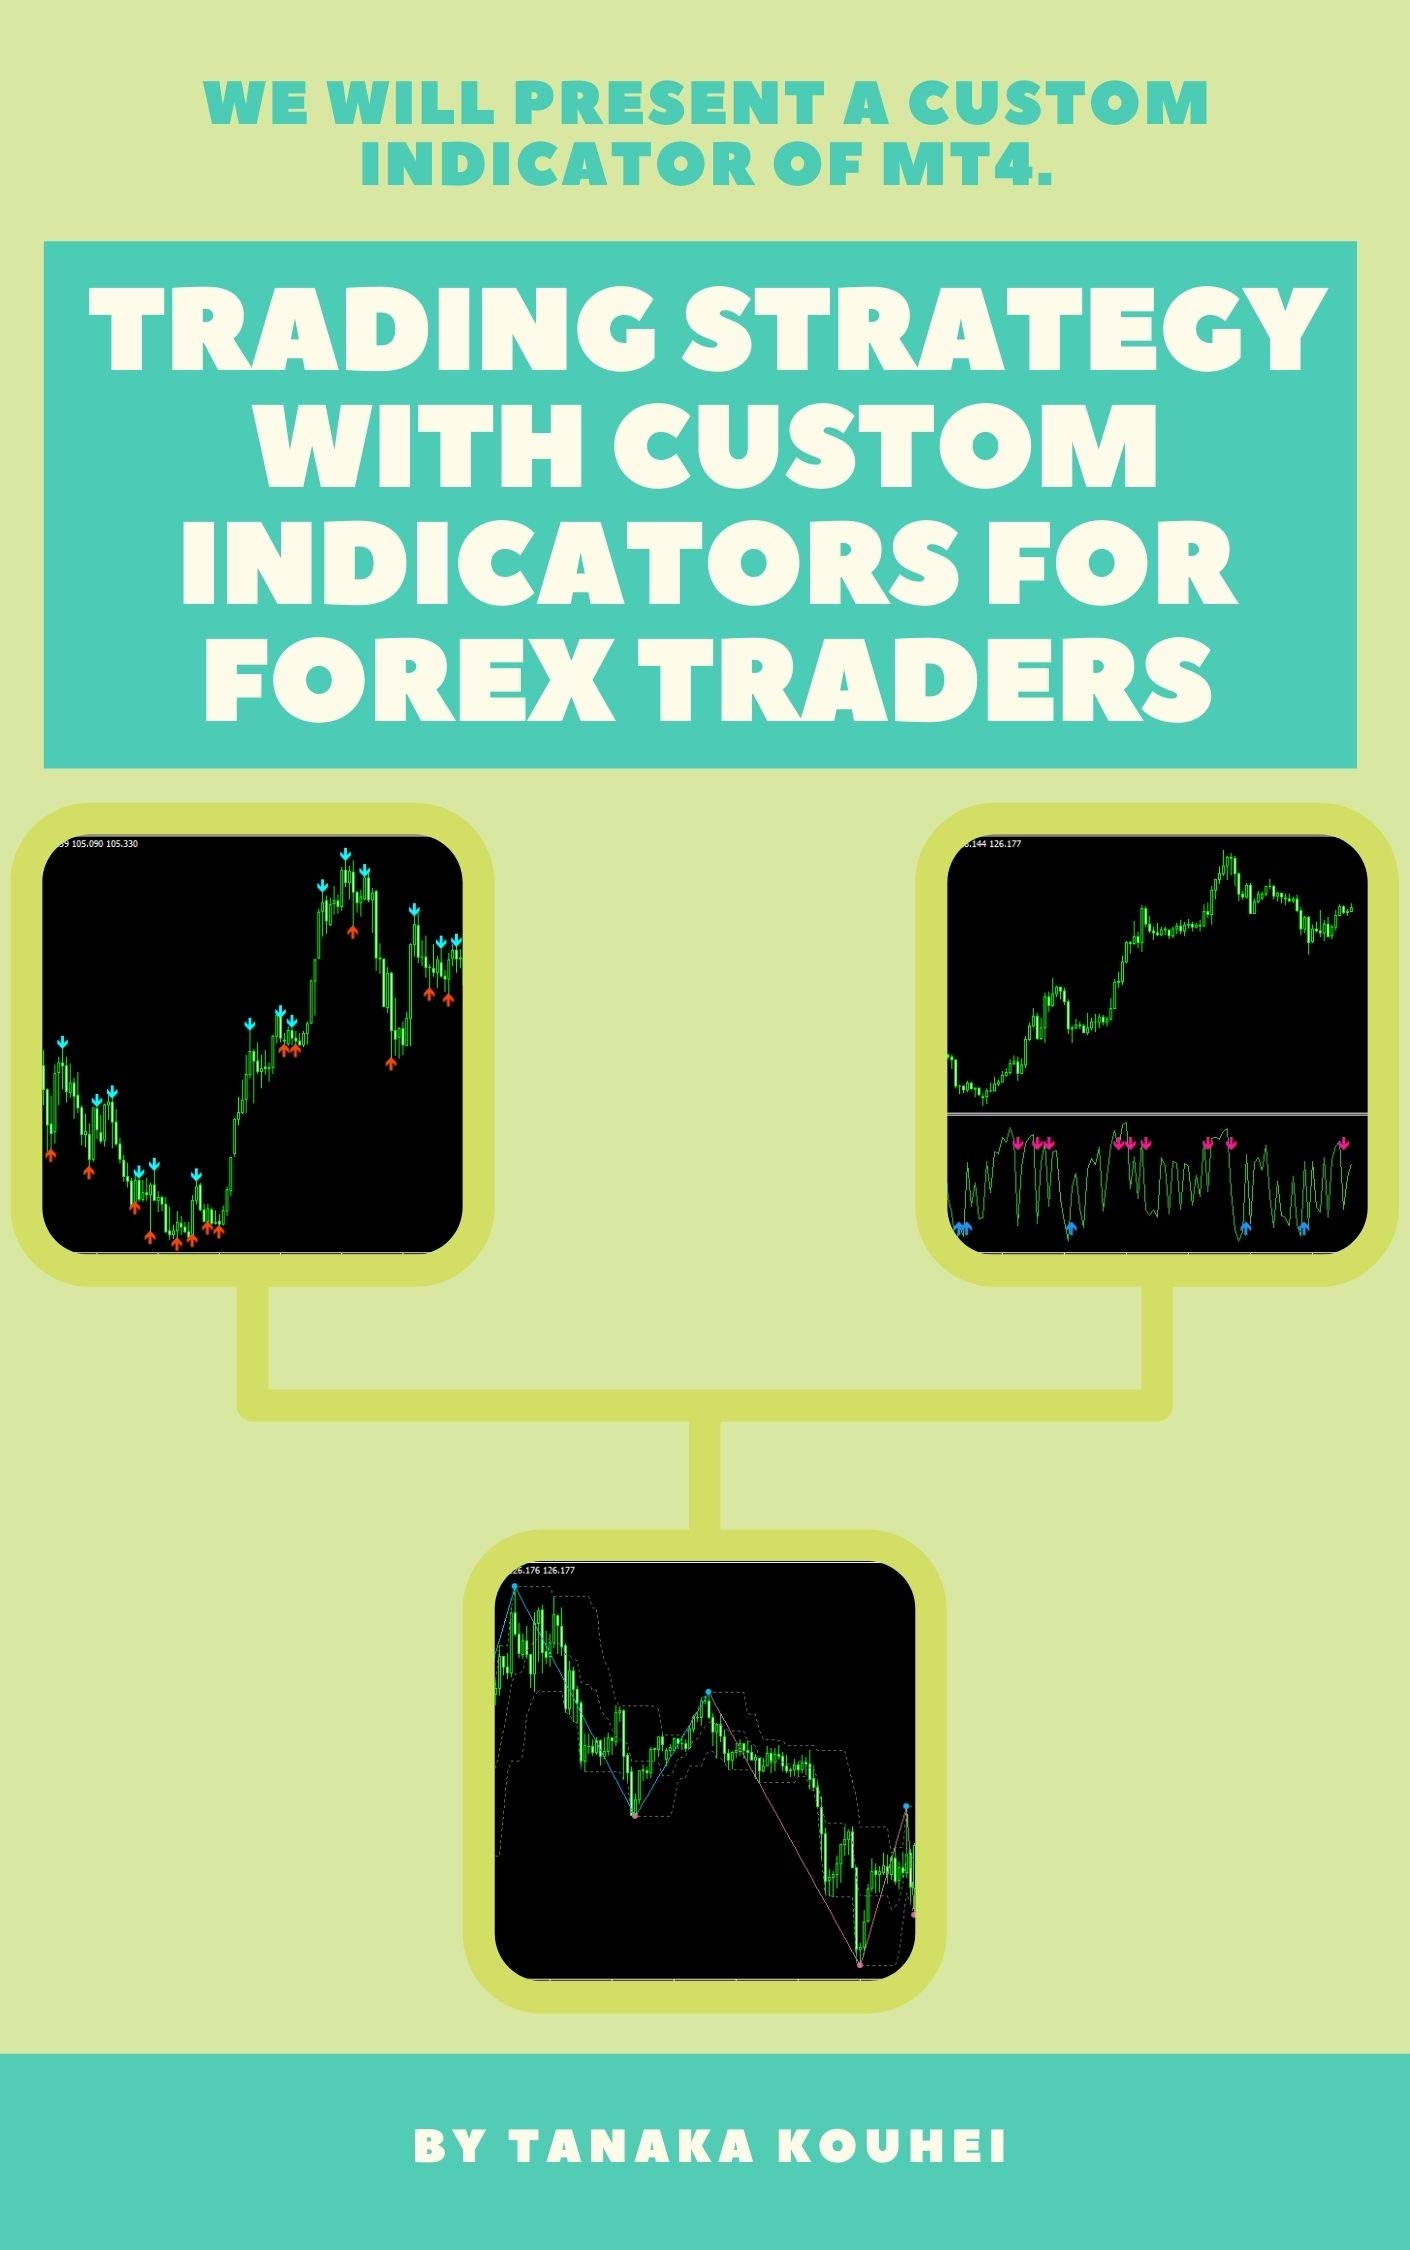 Trading Strategy with Custom Indicators for Forex Traders: Get a custom indicator for MT4.